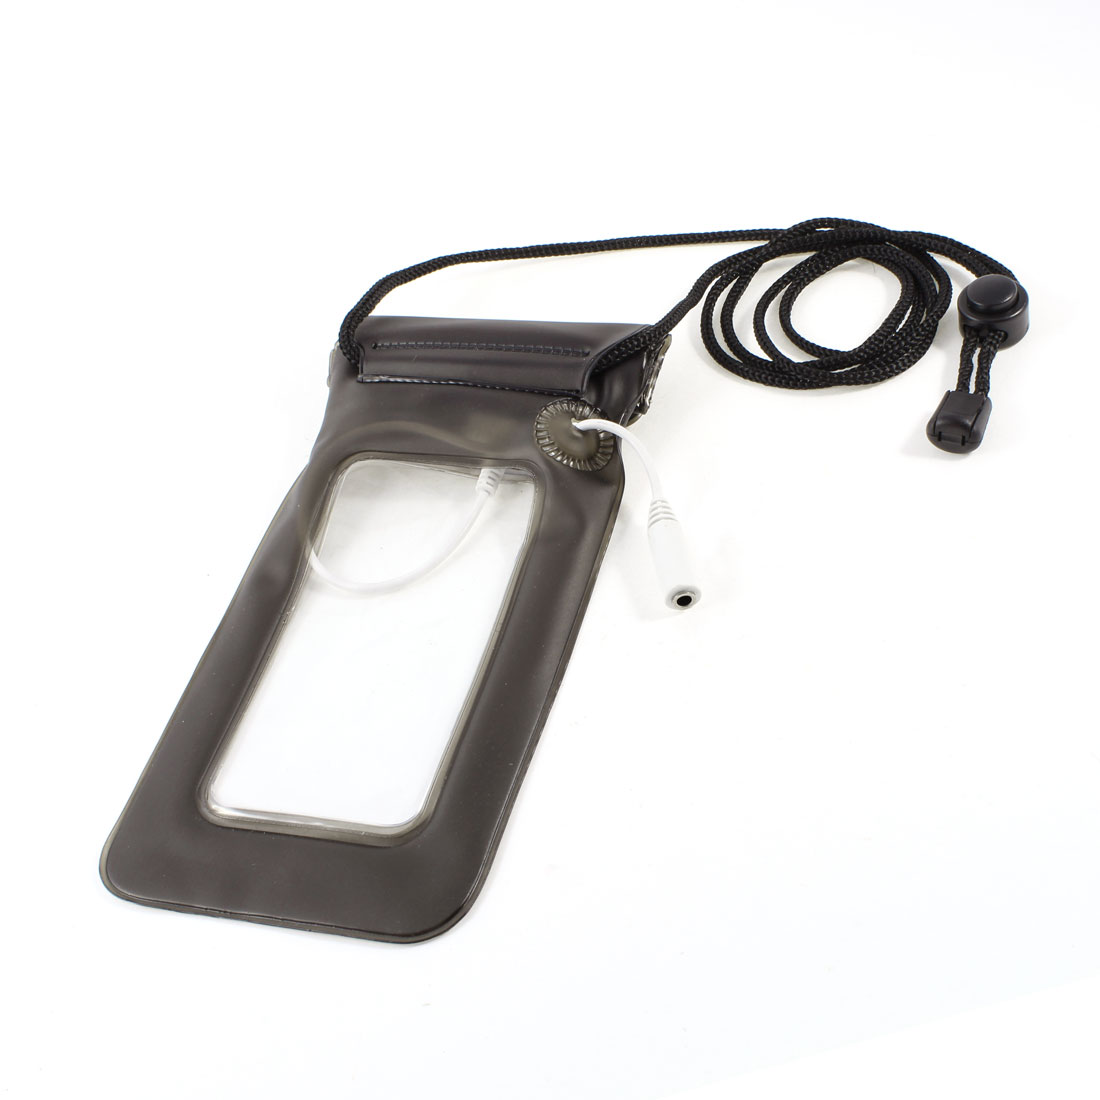 "Dark Gray PVC Waterproof Bag Pouch w 3.5mm Jack Audio Cable for 4.3"" Cell Phone"